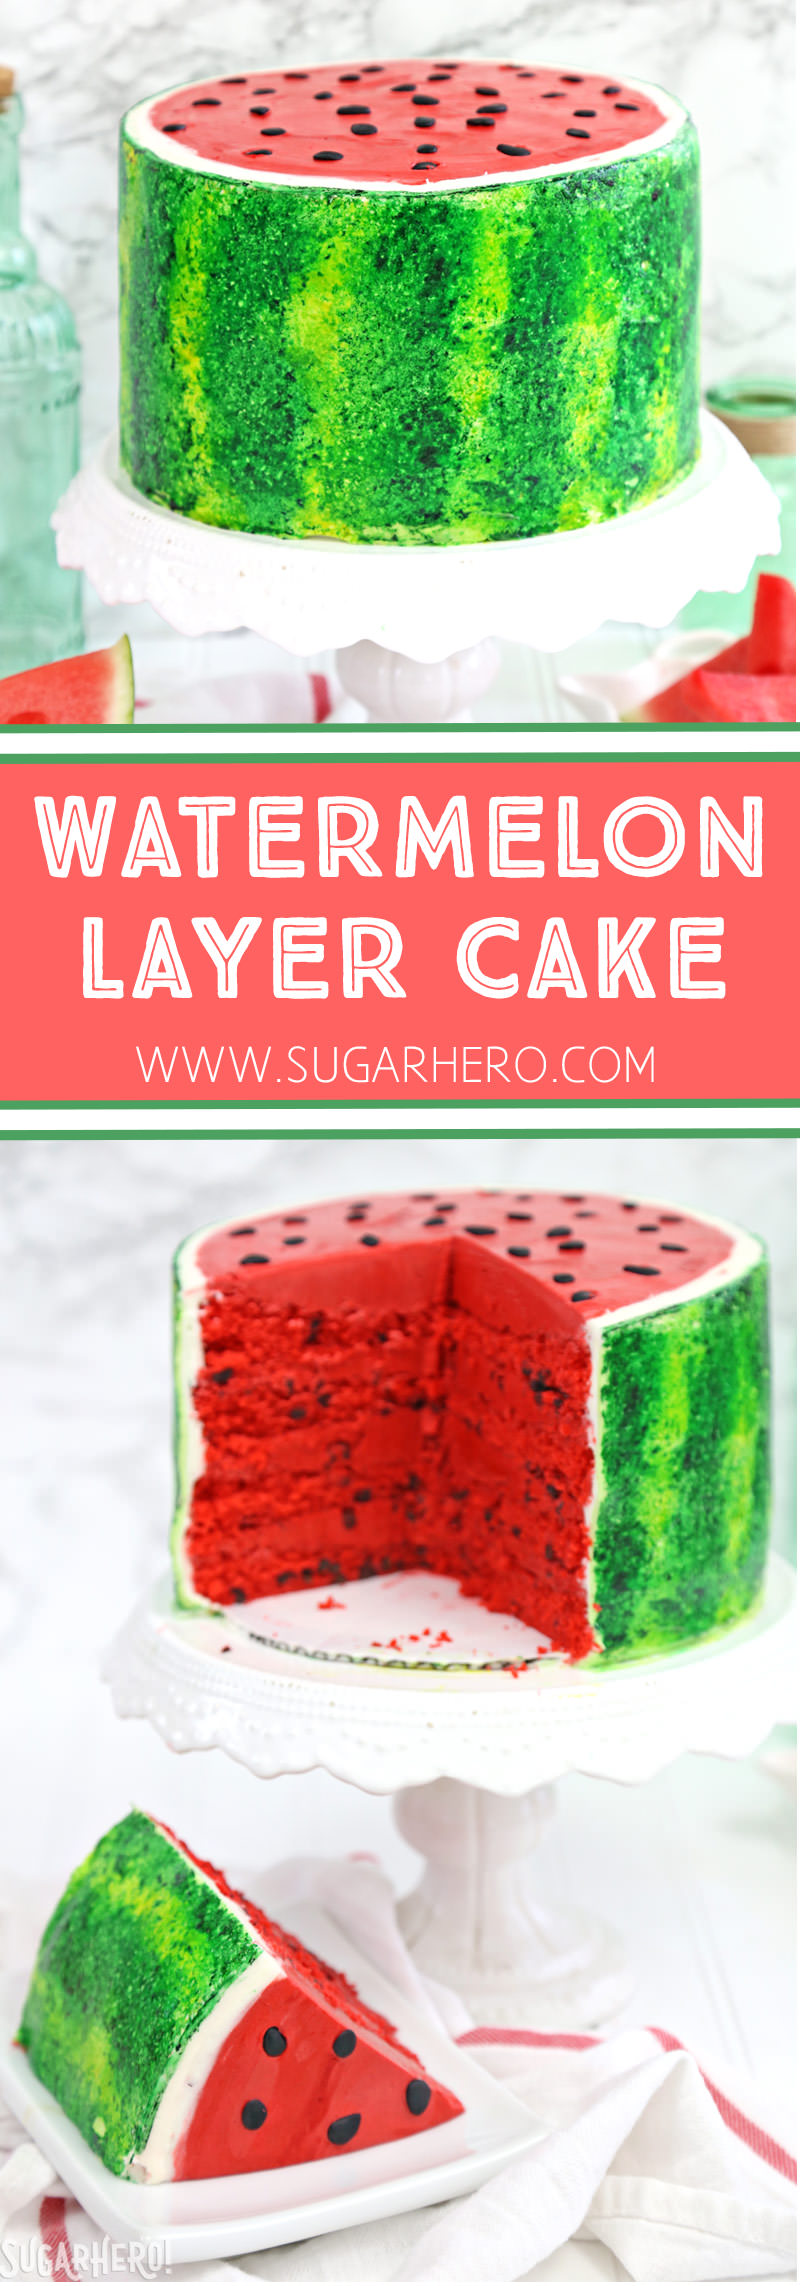 Watermelon Layer Cake - a fun cake that looks AND tastes like a watermelon! | From SugarHero.com